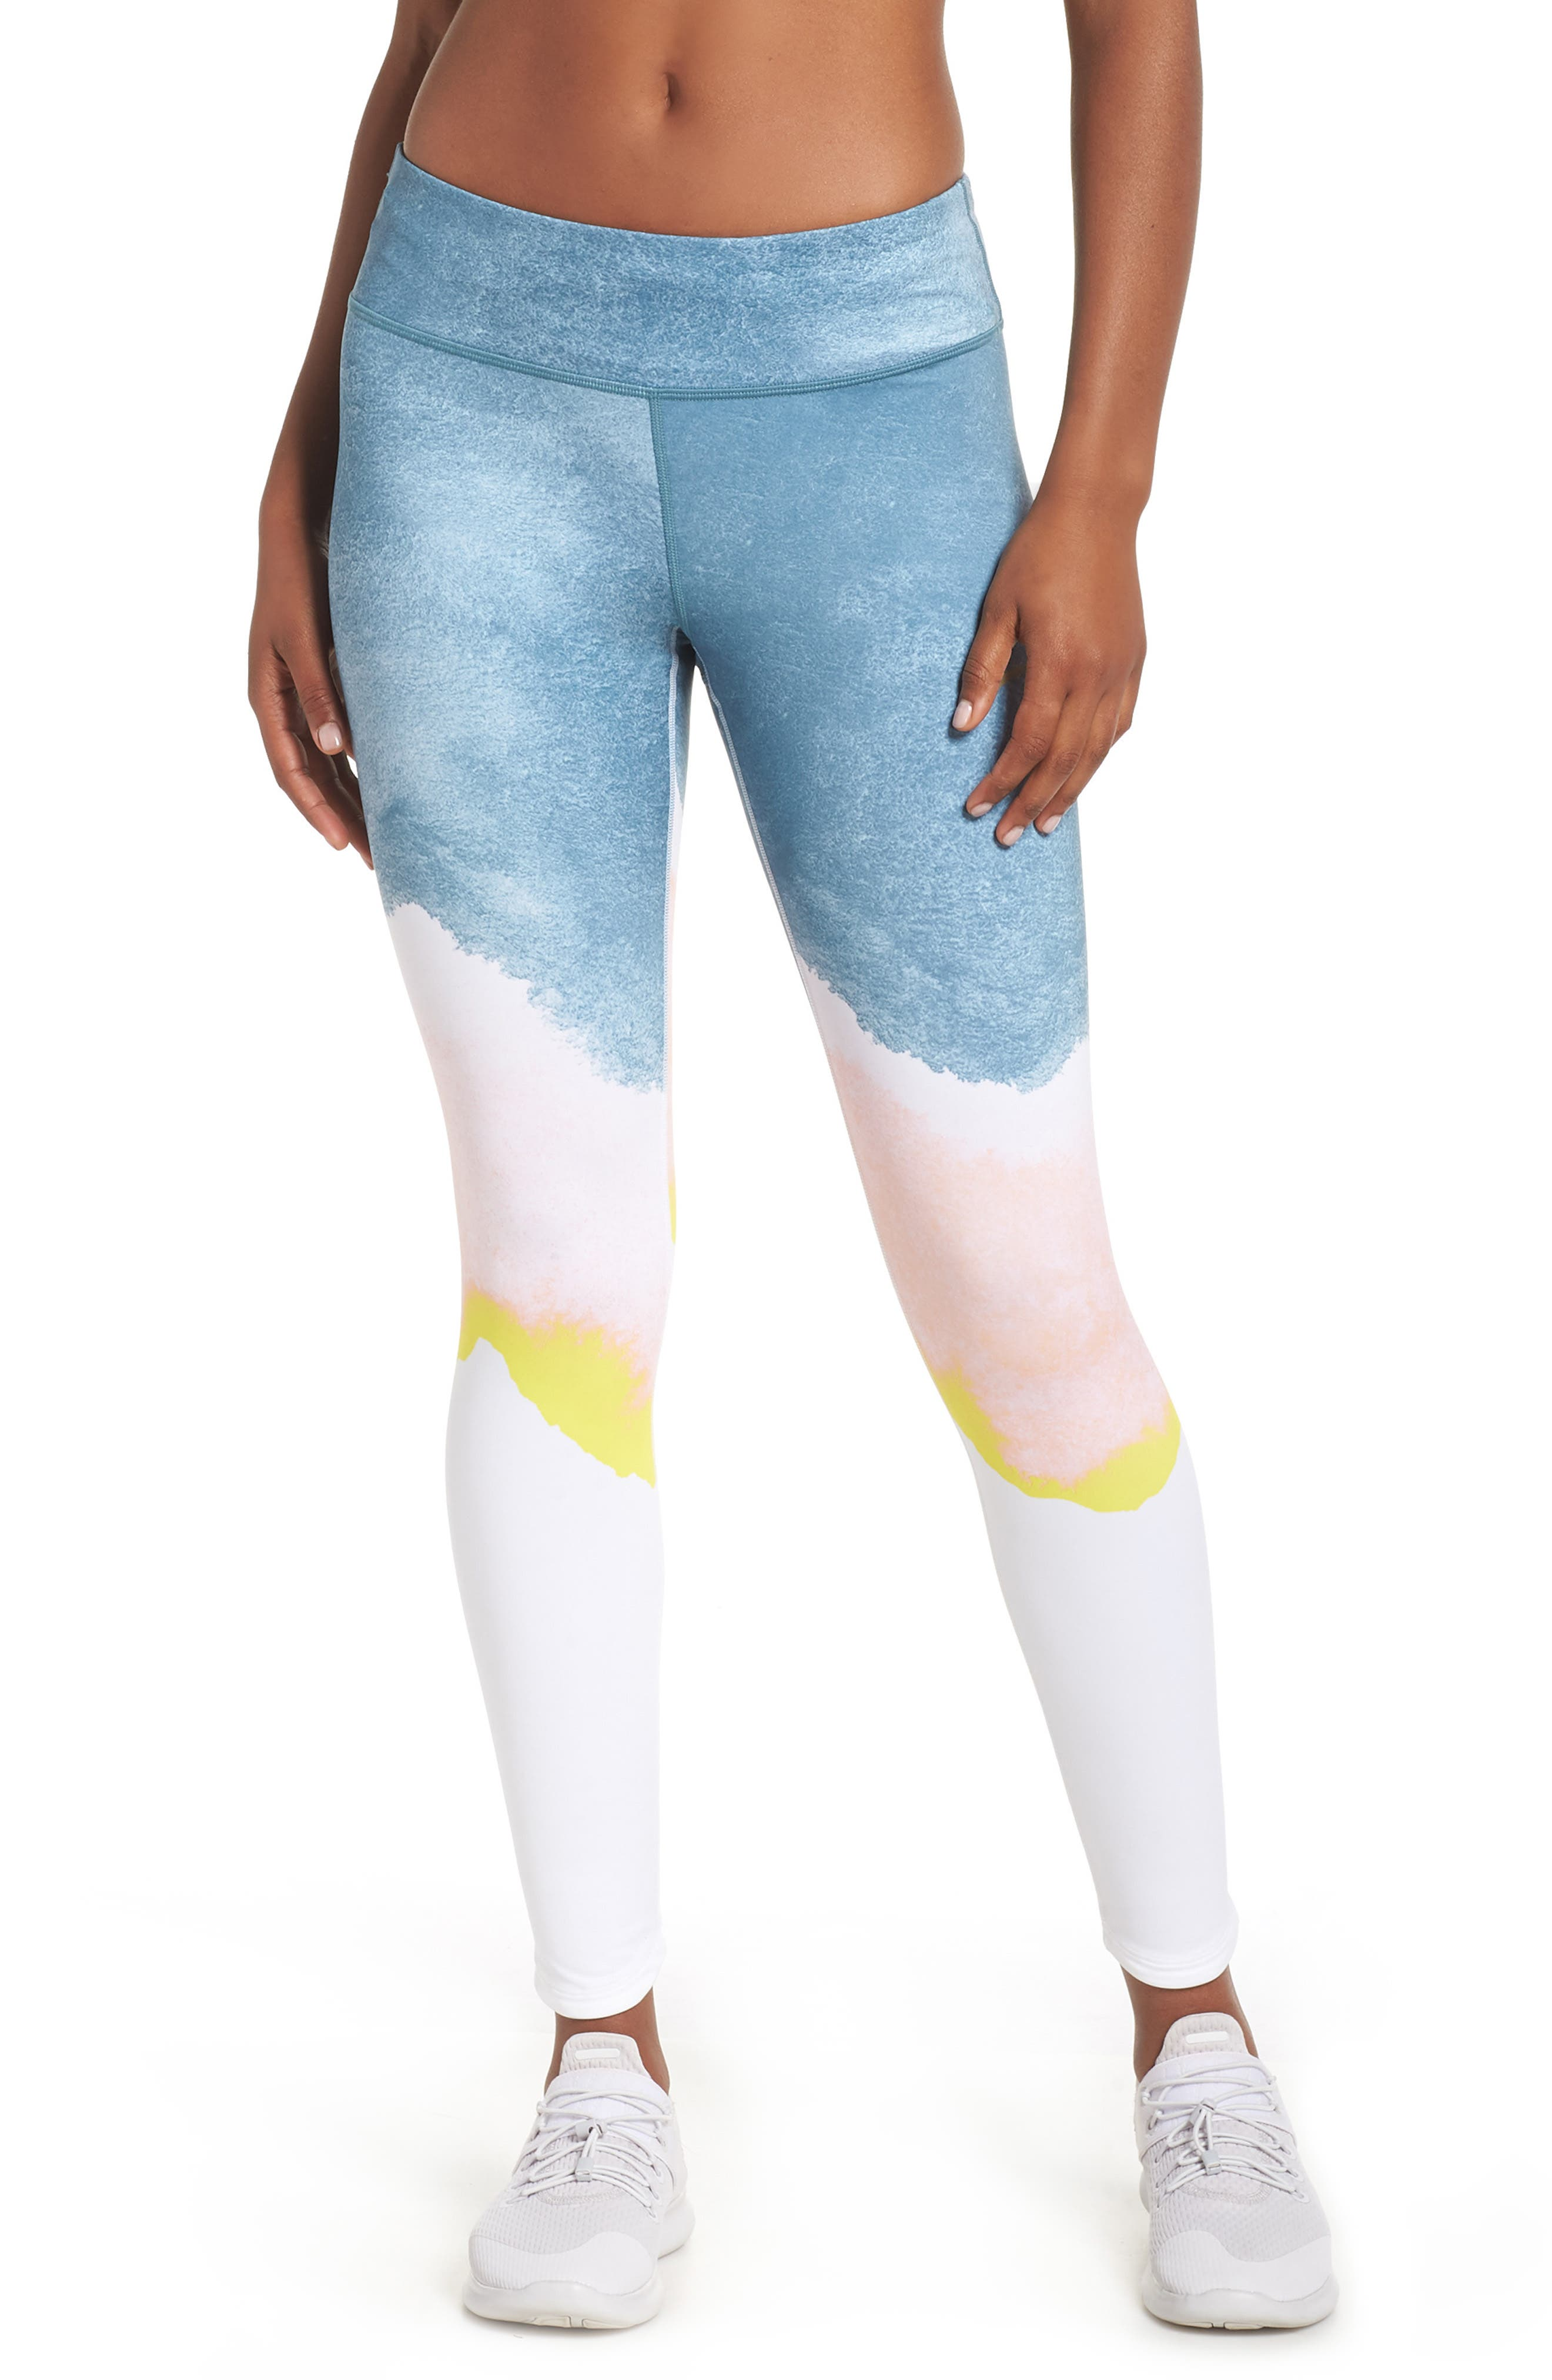 Epic Lux Running Leggings,                             Main thumbnail 1, color,                             WHITE/ STORM PINK/ GOLD